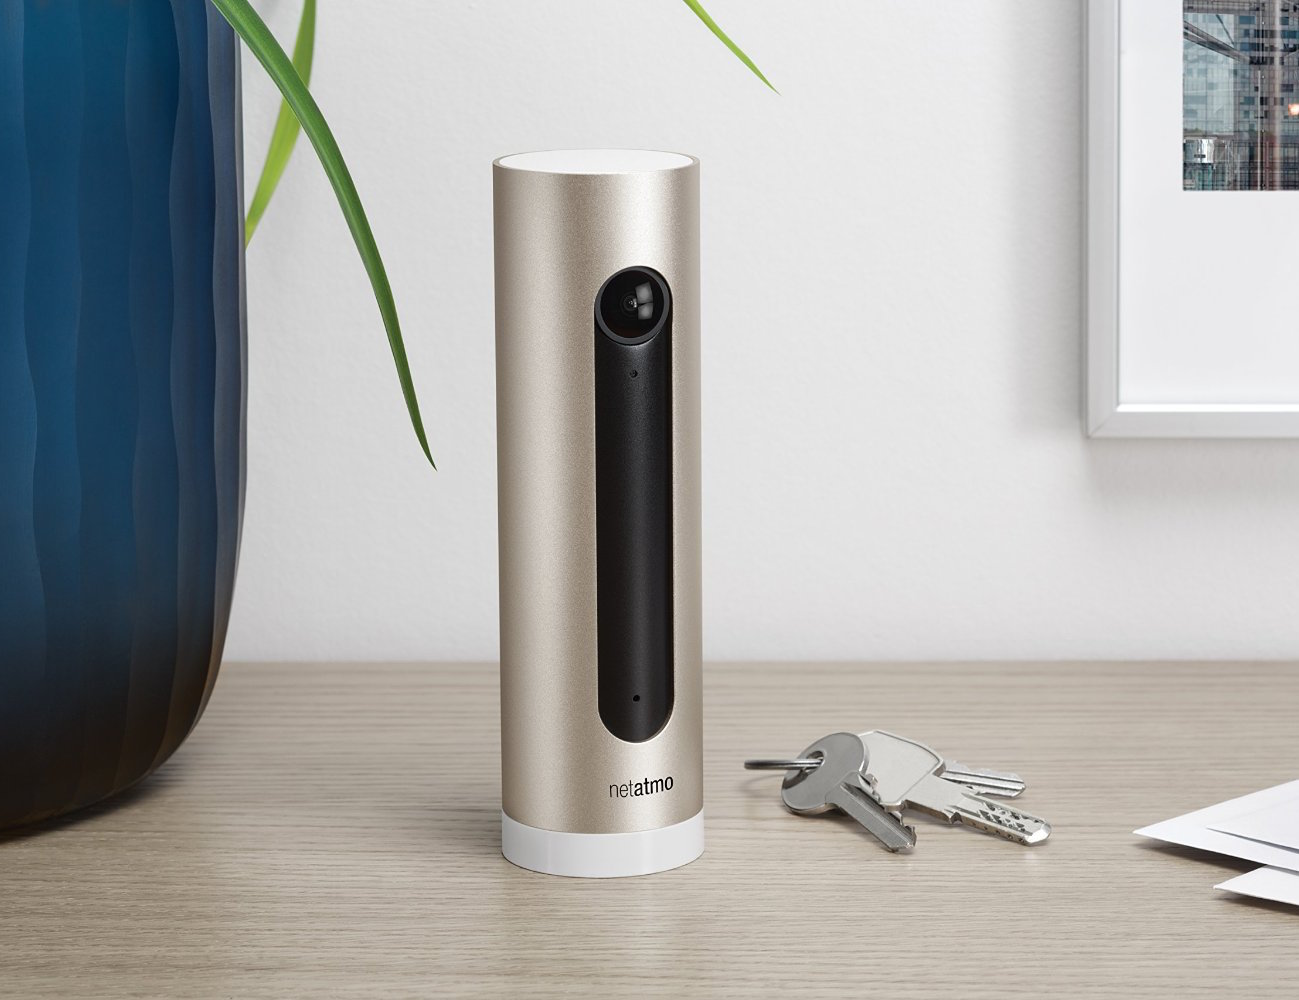 welcome home security camera with face recognition by netatmo review. Black Bedroom Furniture Sets. Home Design Ideas